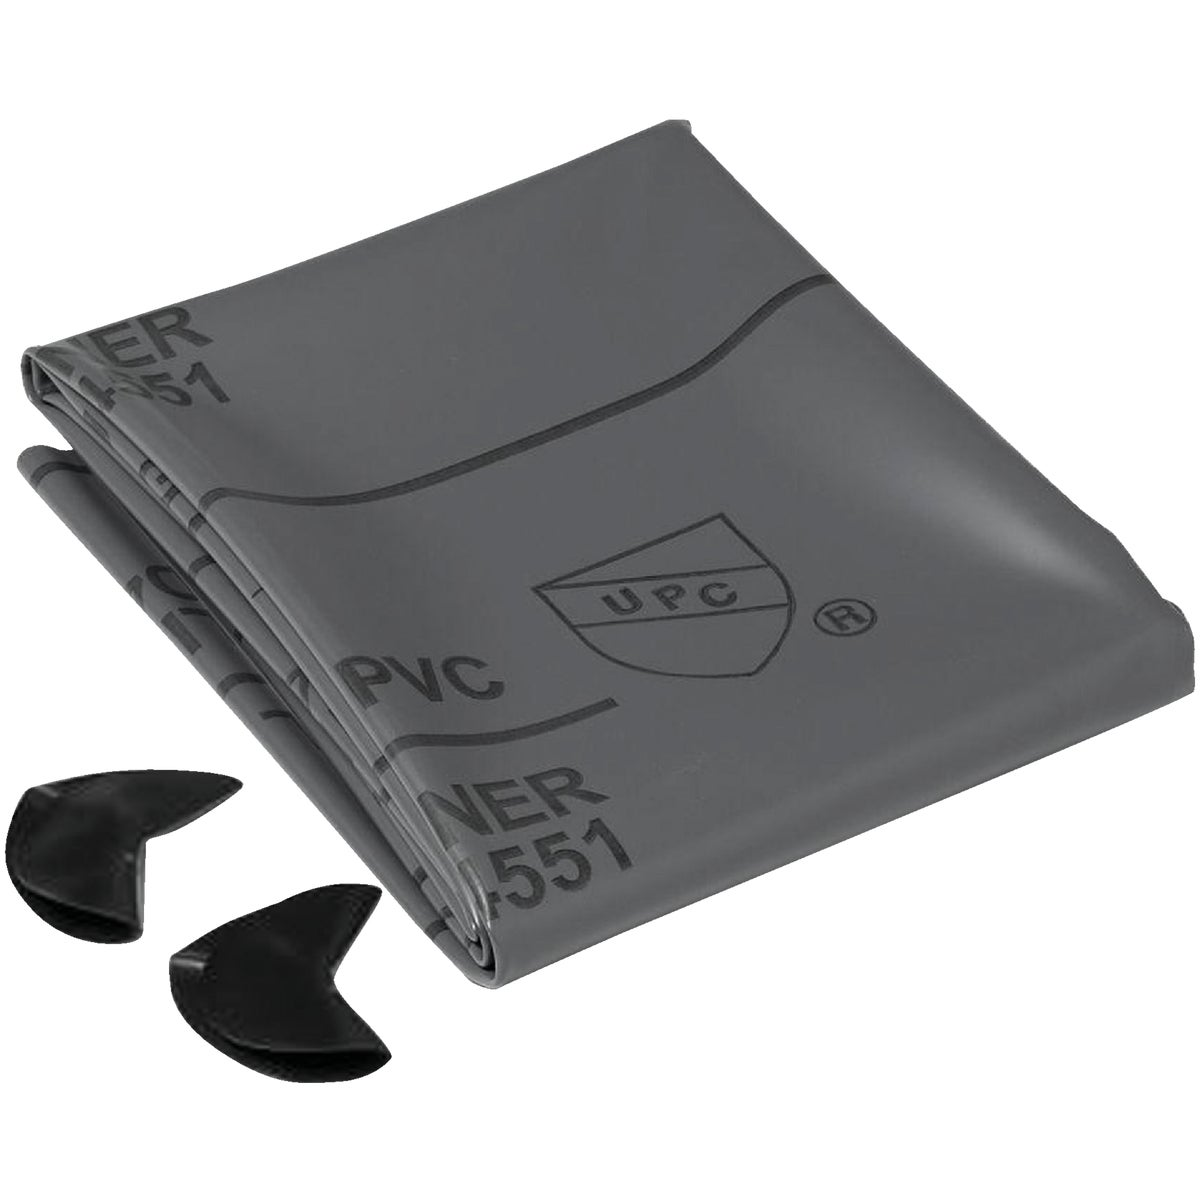 PVC SHOWER PAN LINER - 41620 by Oatey Scs